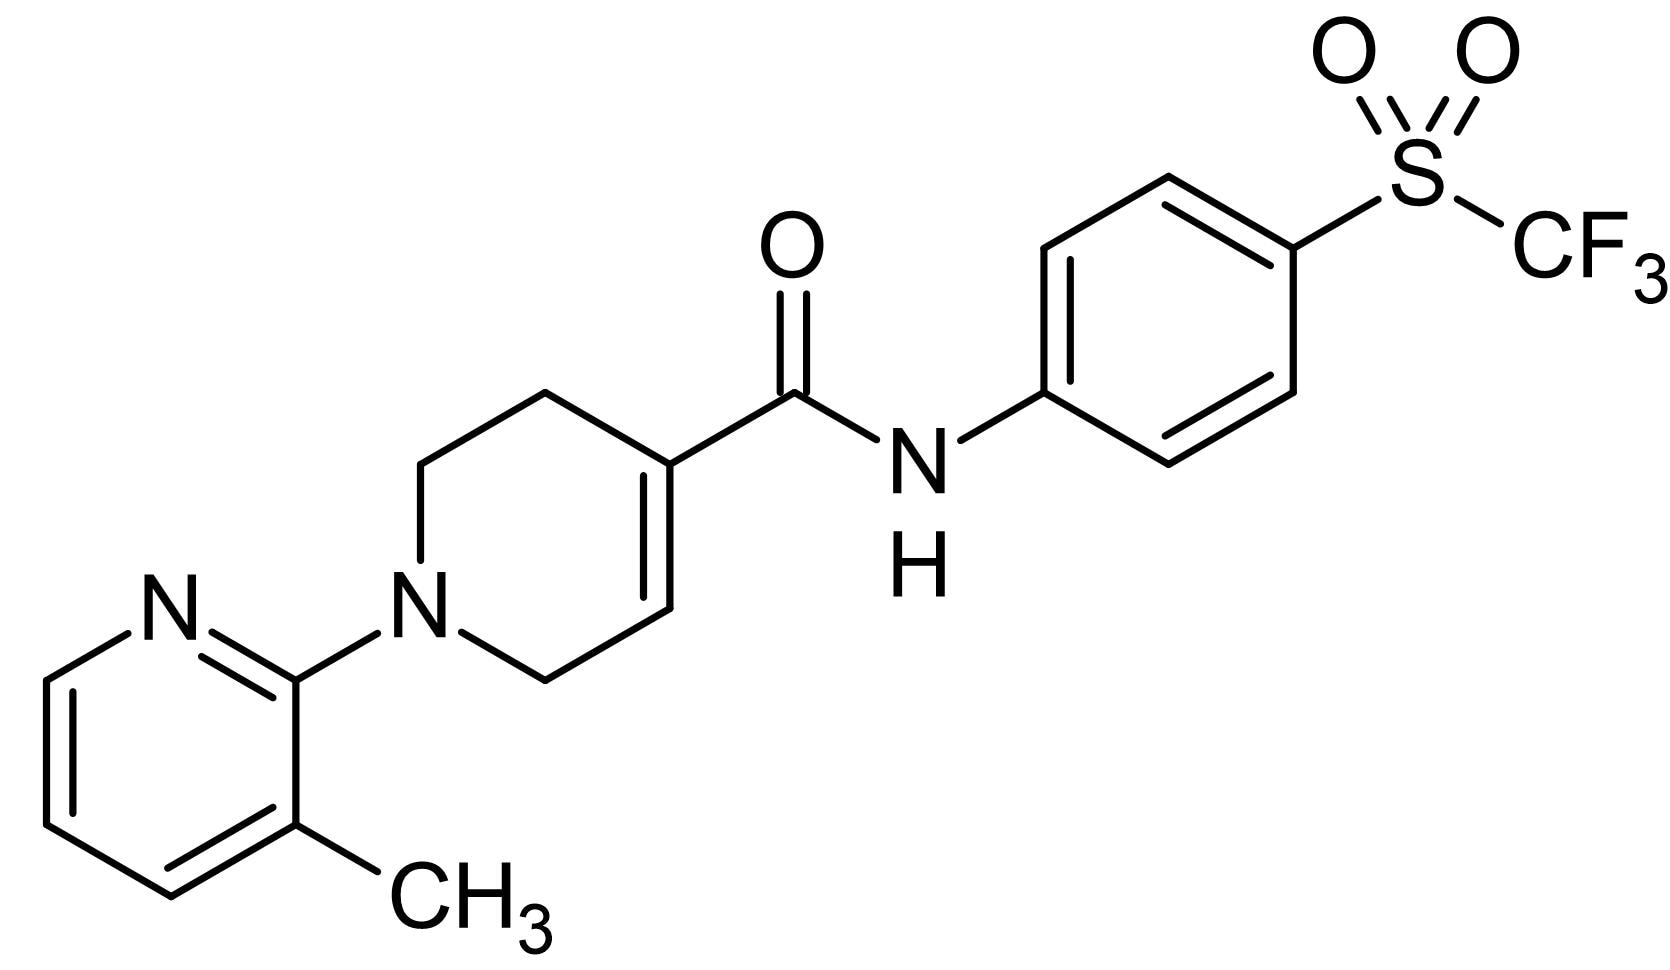 Chemical Structure - A 889425, TRPV1 antagonist (ab145528)